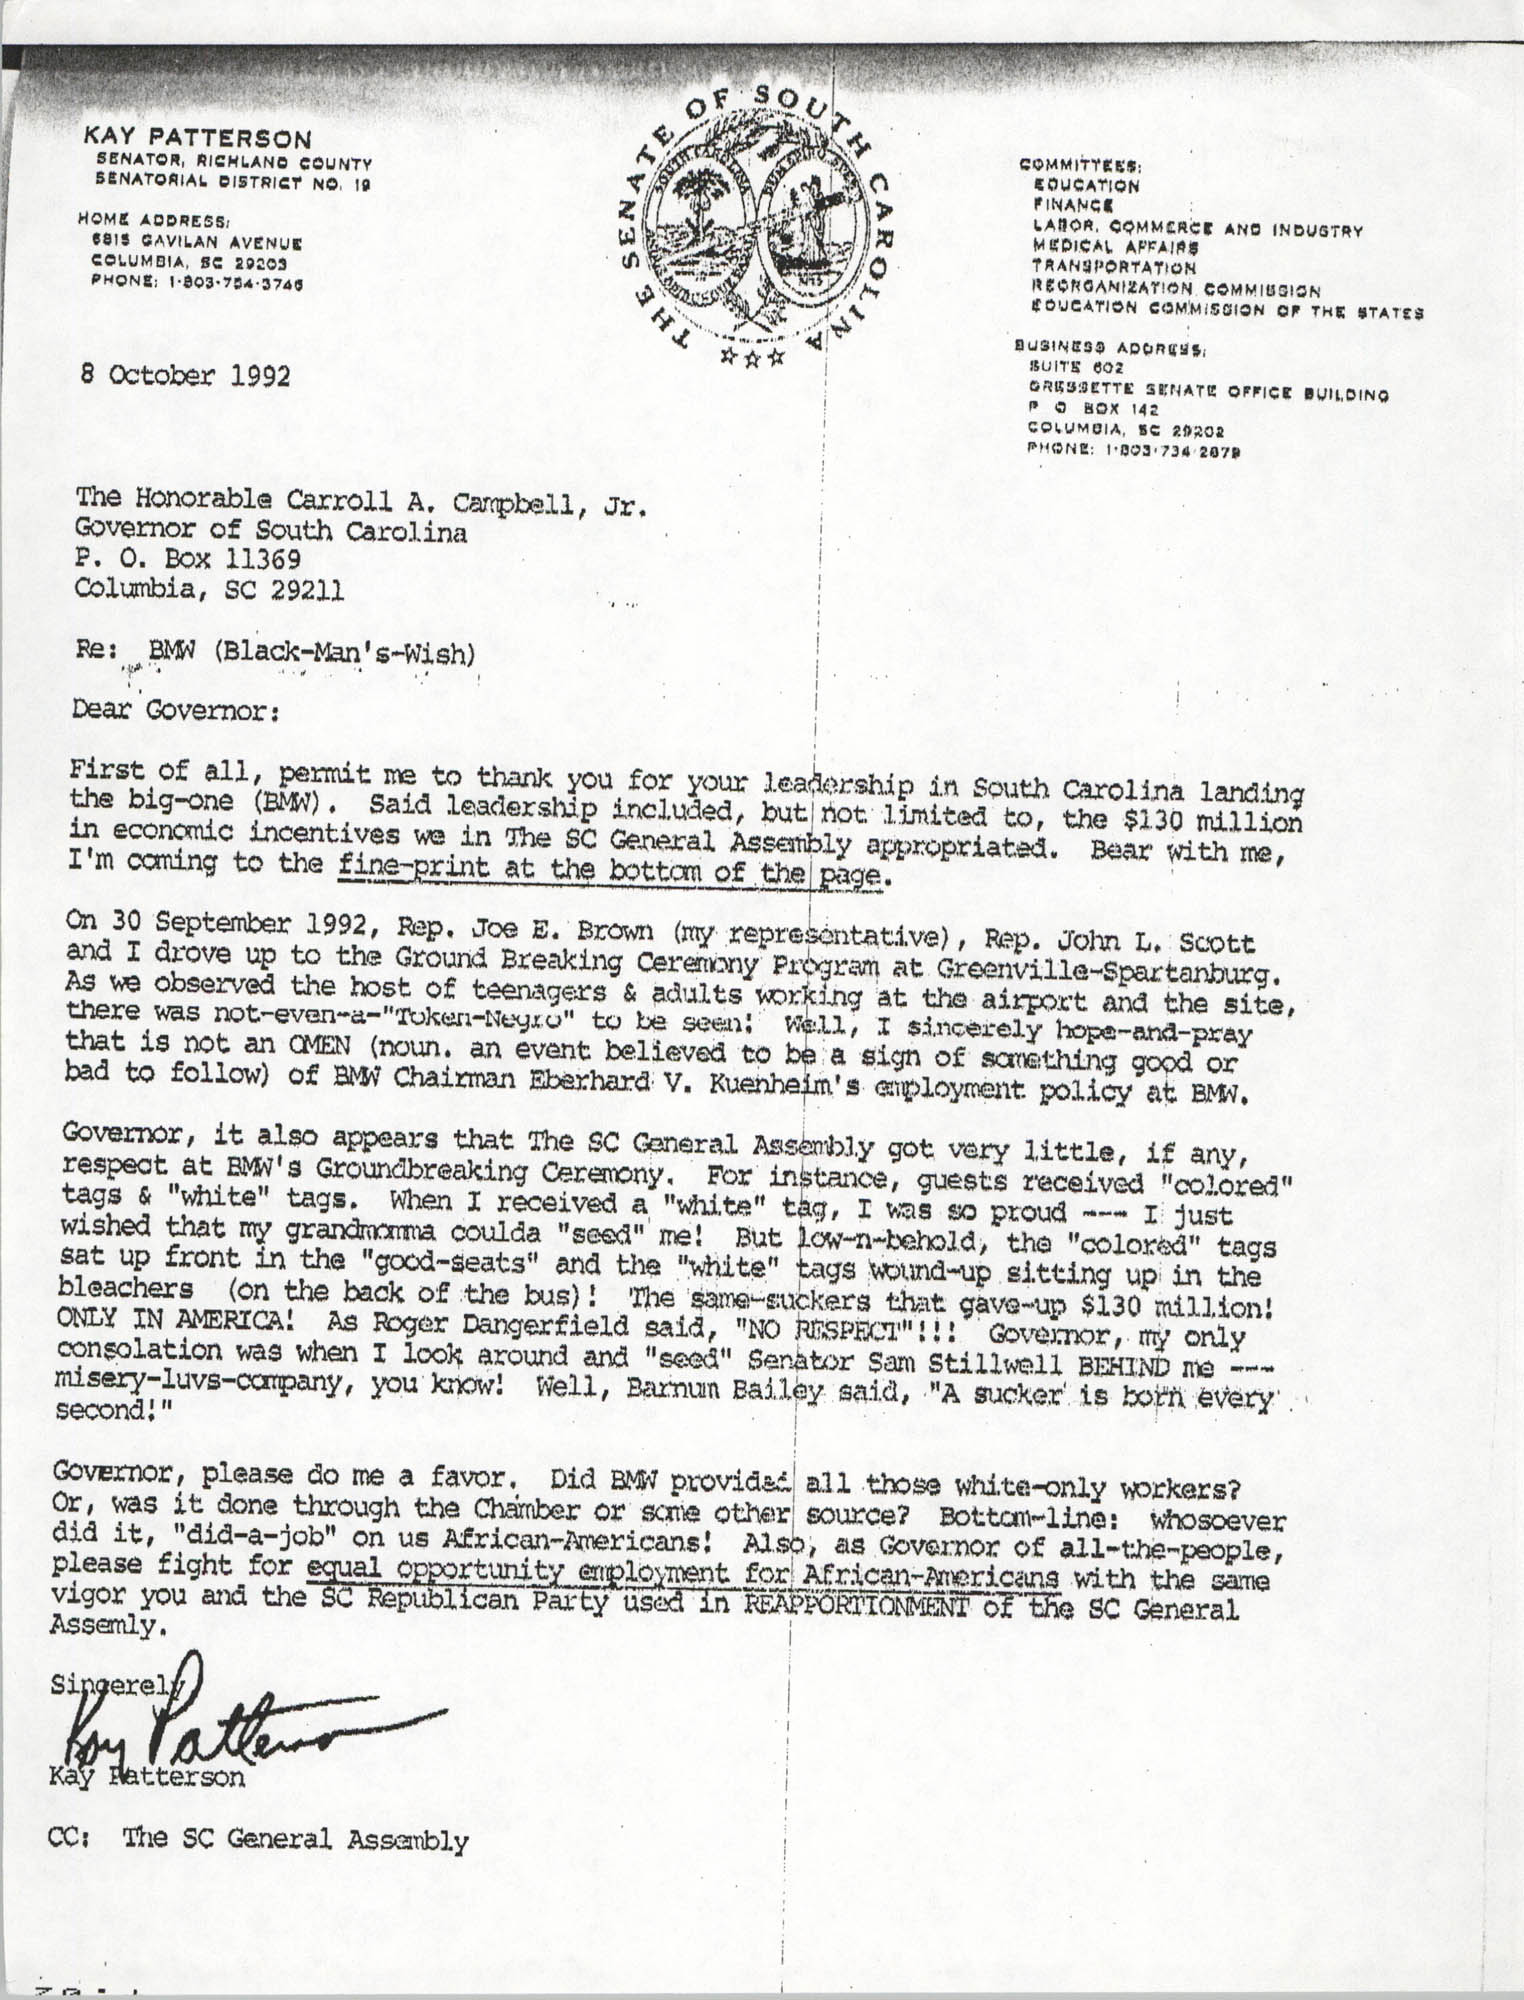 Letter from Kay Patterson to Carroll A. Campbell, Jr., October 8, 1992